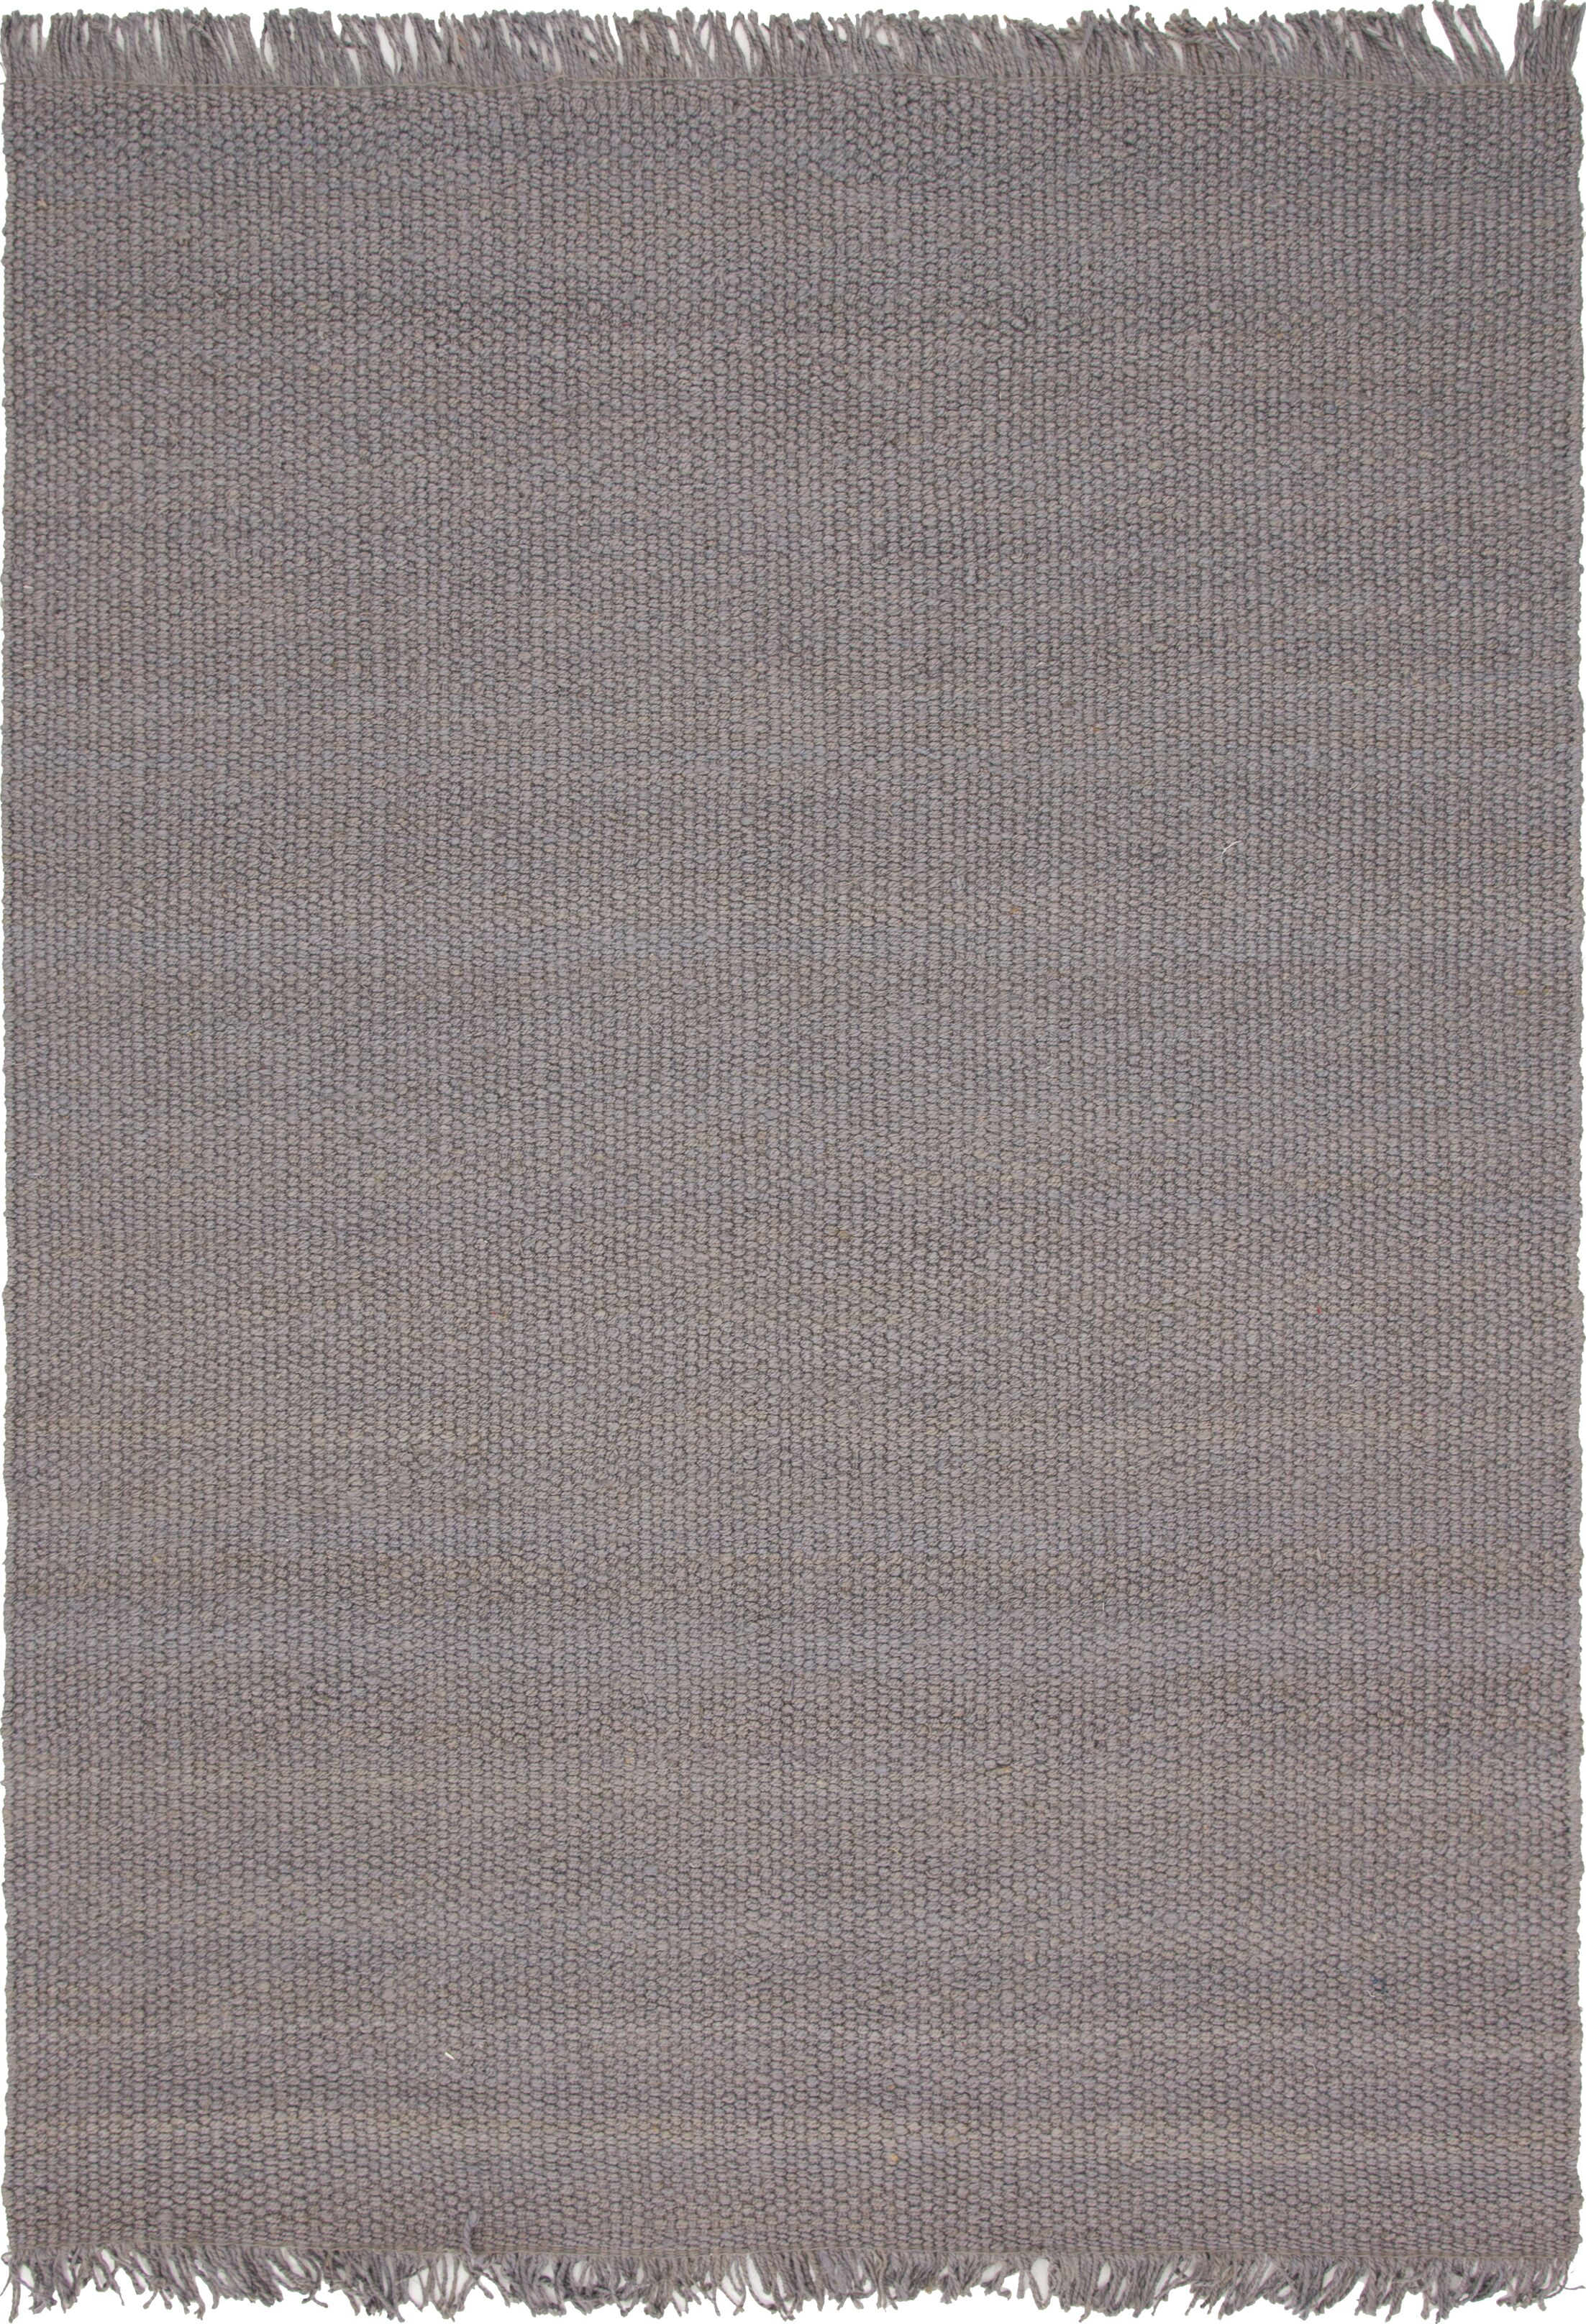 Gelman Hand-Woven Gray Area Rug Rug Size: Rectangle 4' x 6'